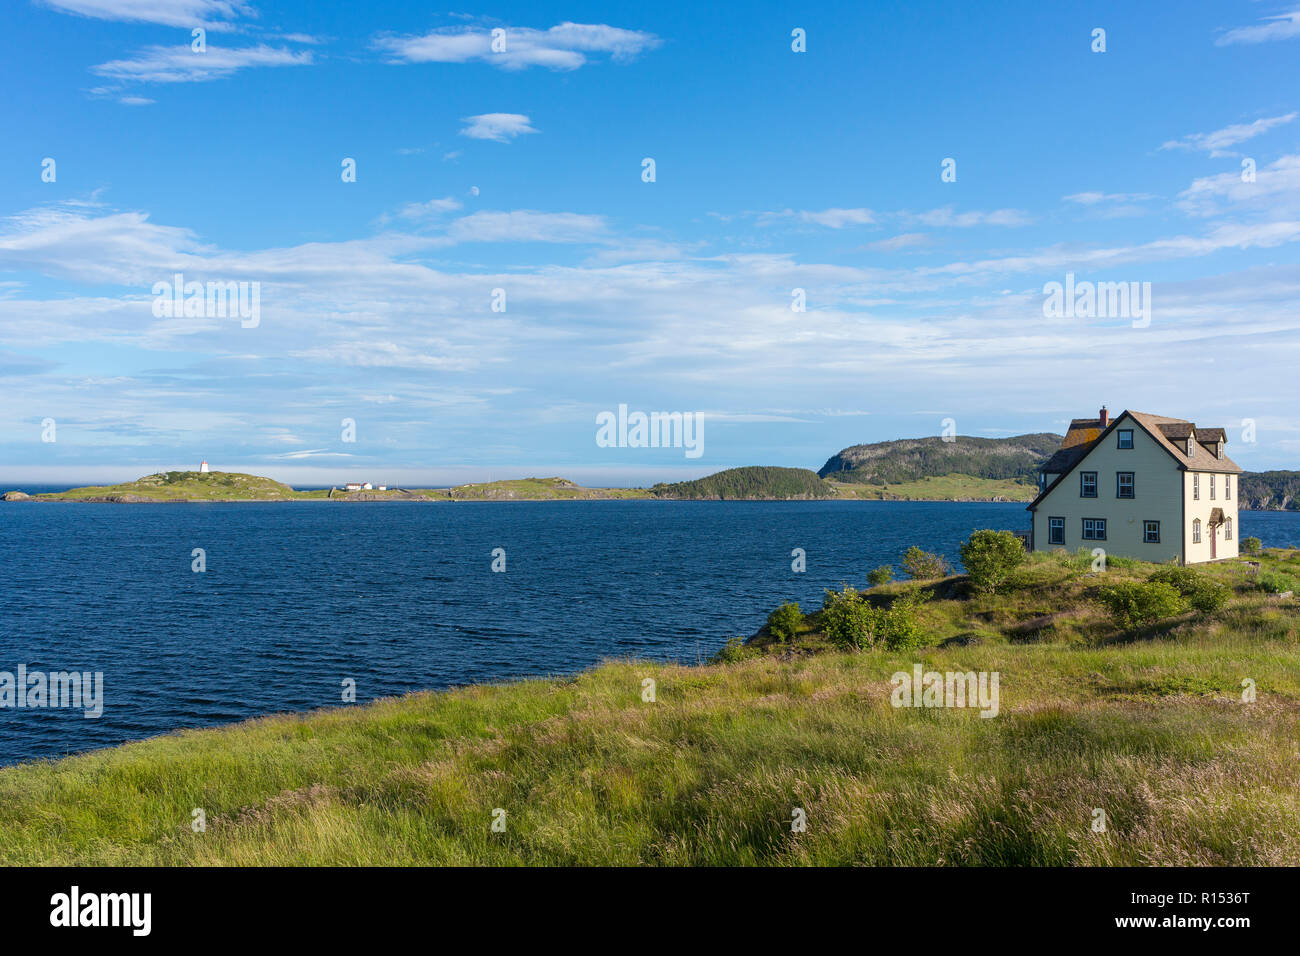 TRINITY, NEWFOUNDLAND, CANADA - Private home overlooking Trinity Bay. - Stock Image